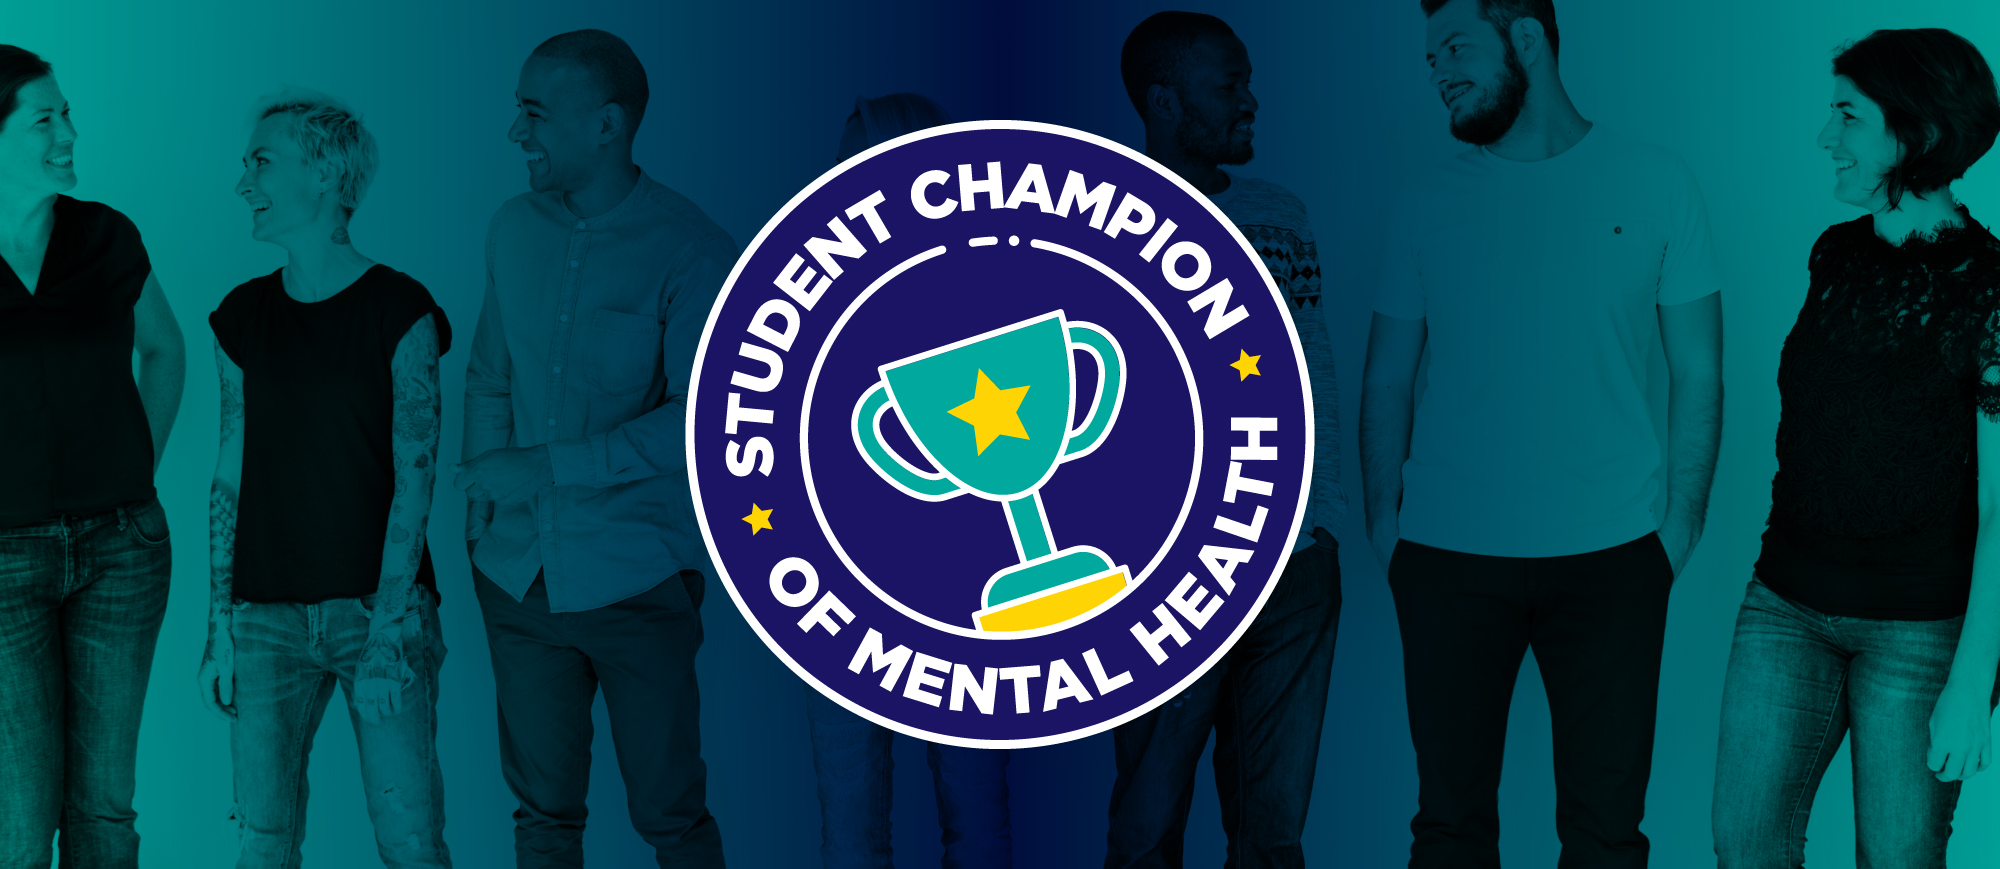 Student champion of mental health